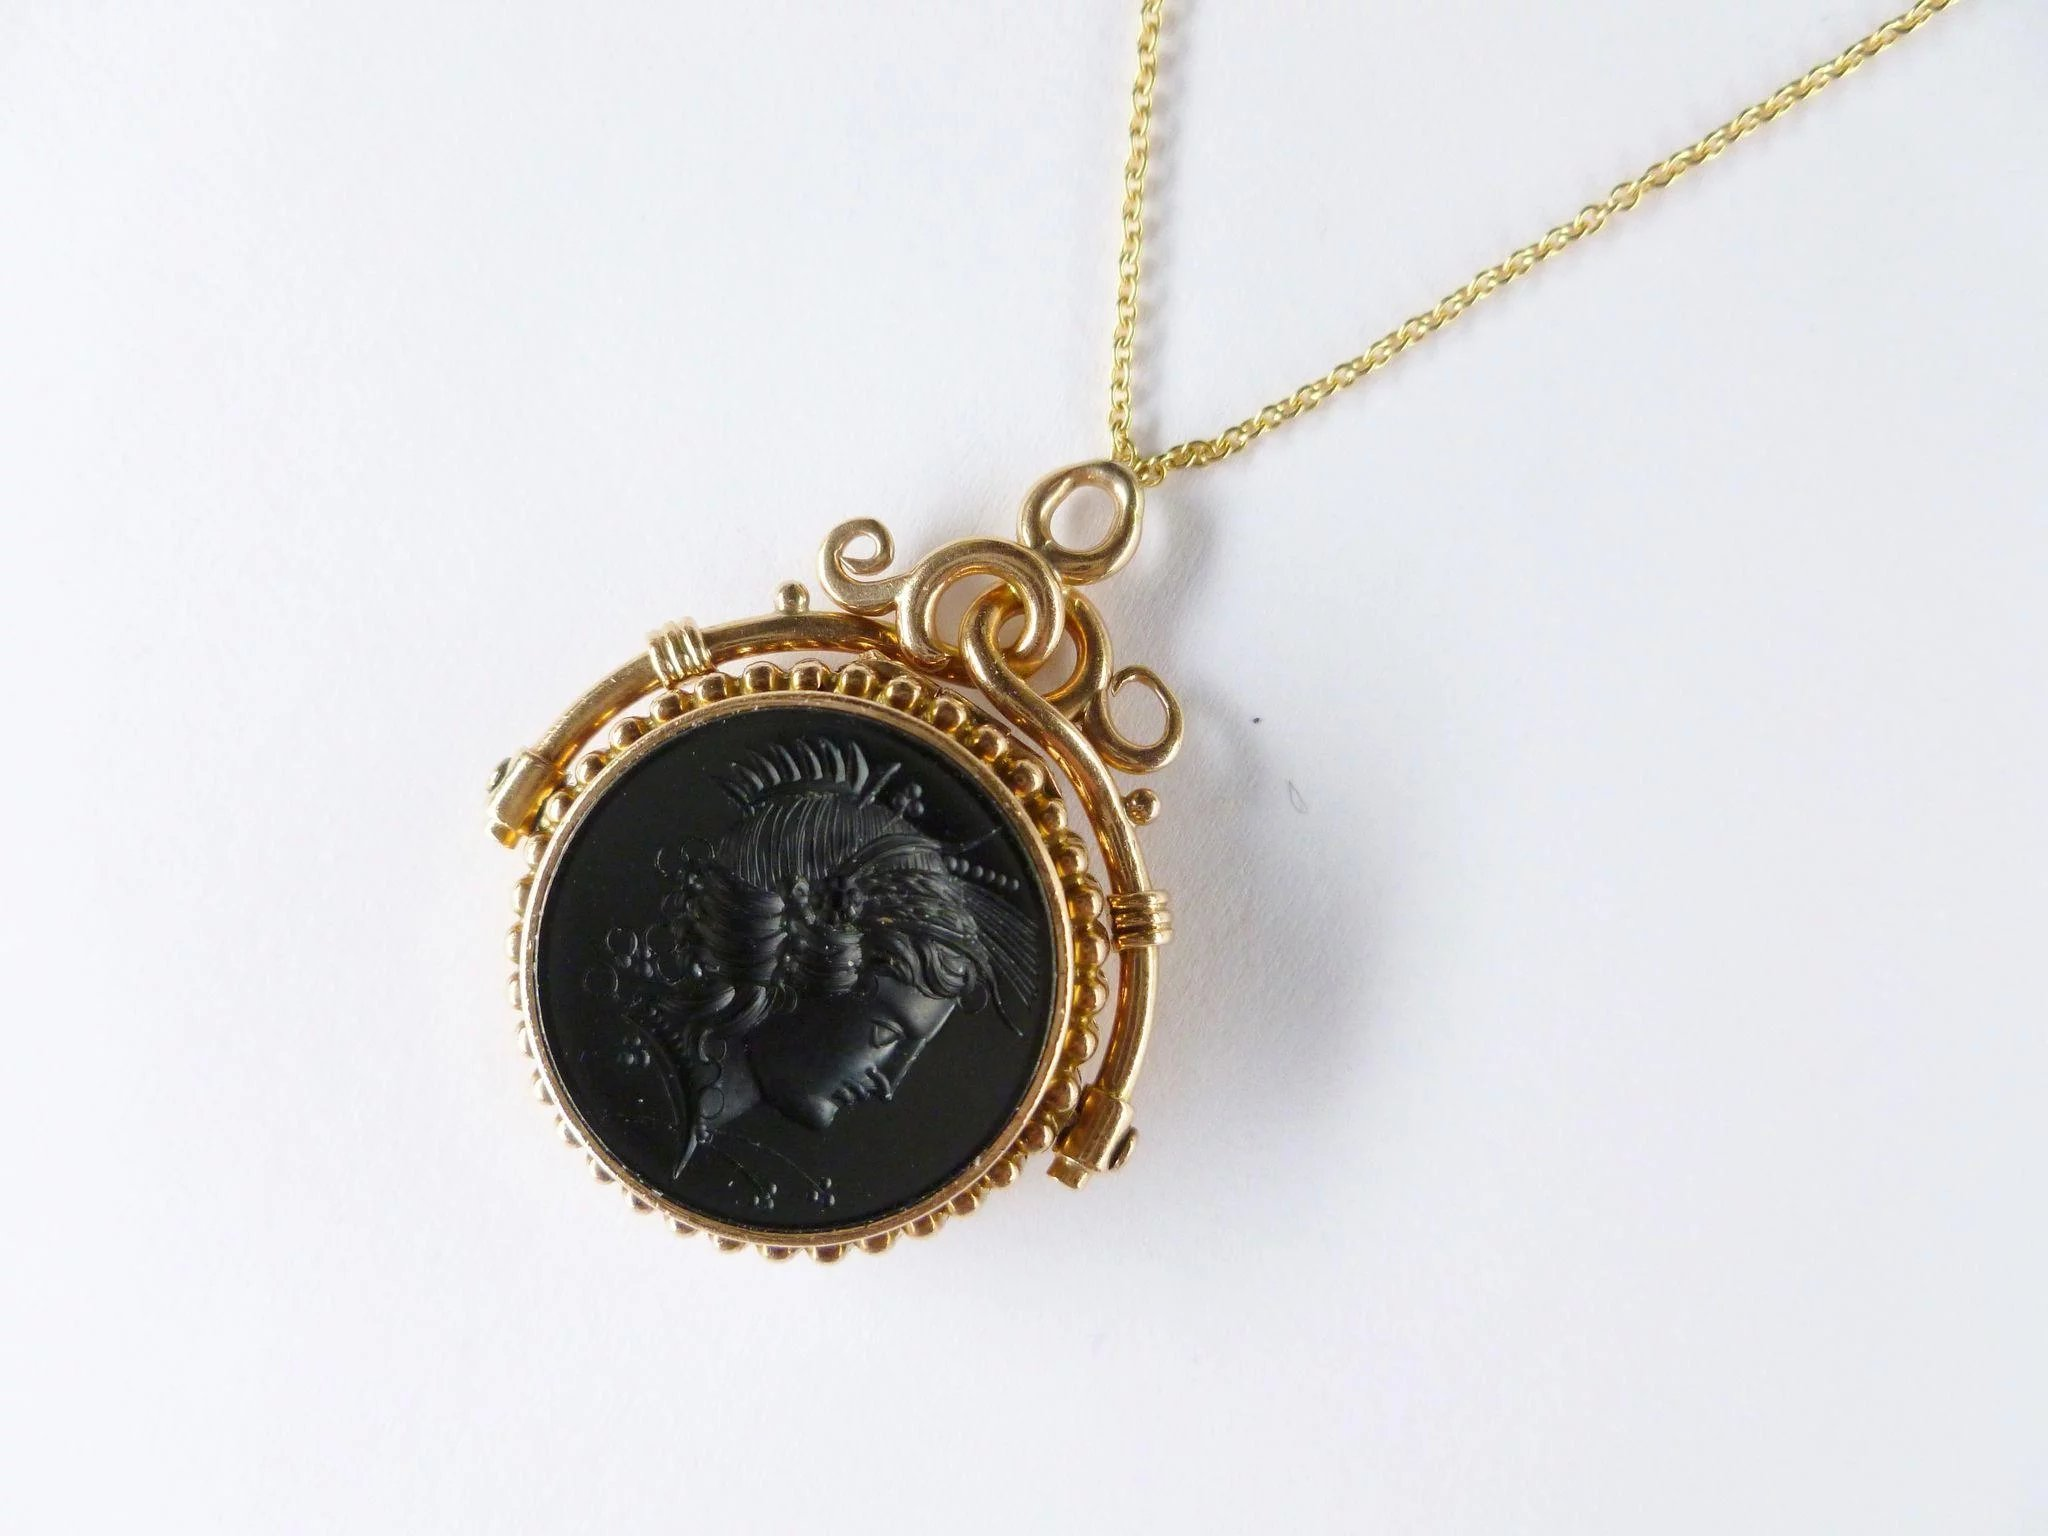 necklace pendant intaglio pin crown gemini mark zodiac trifari twins